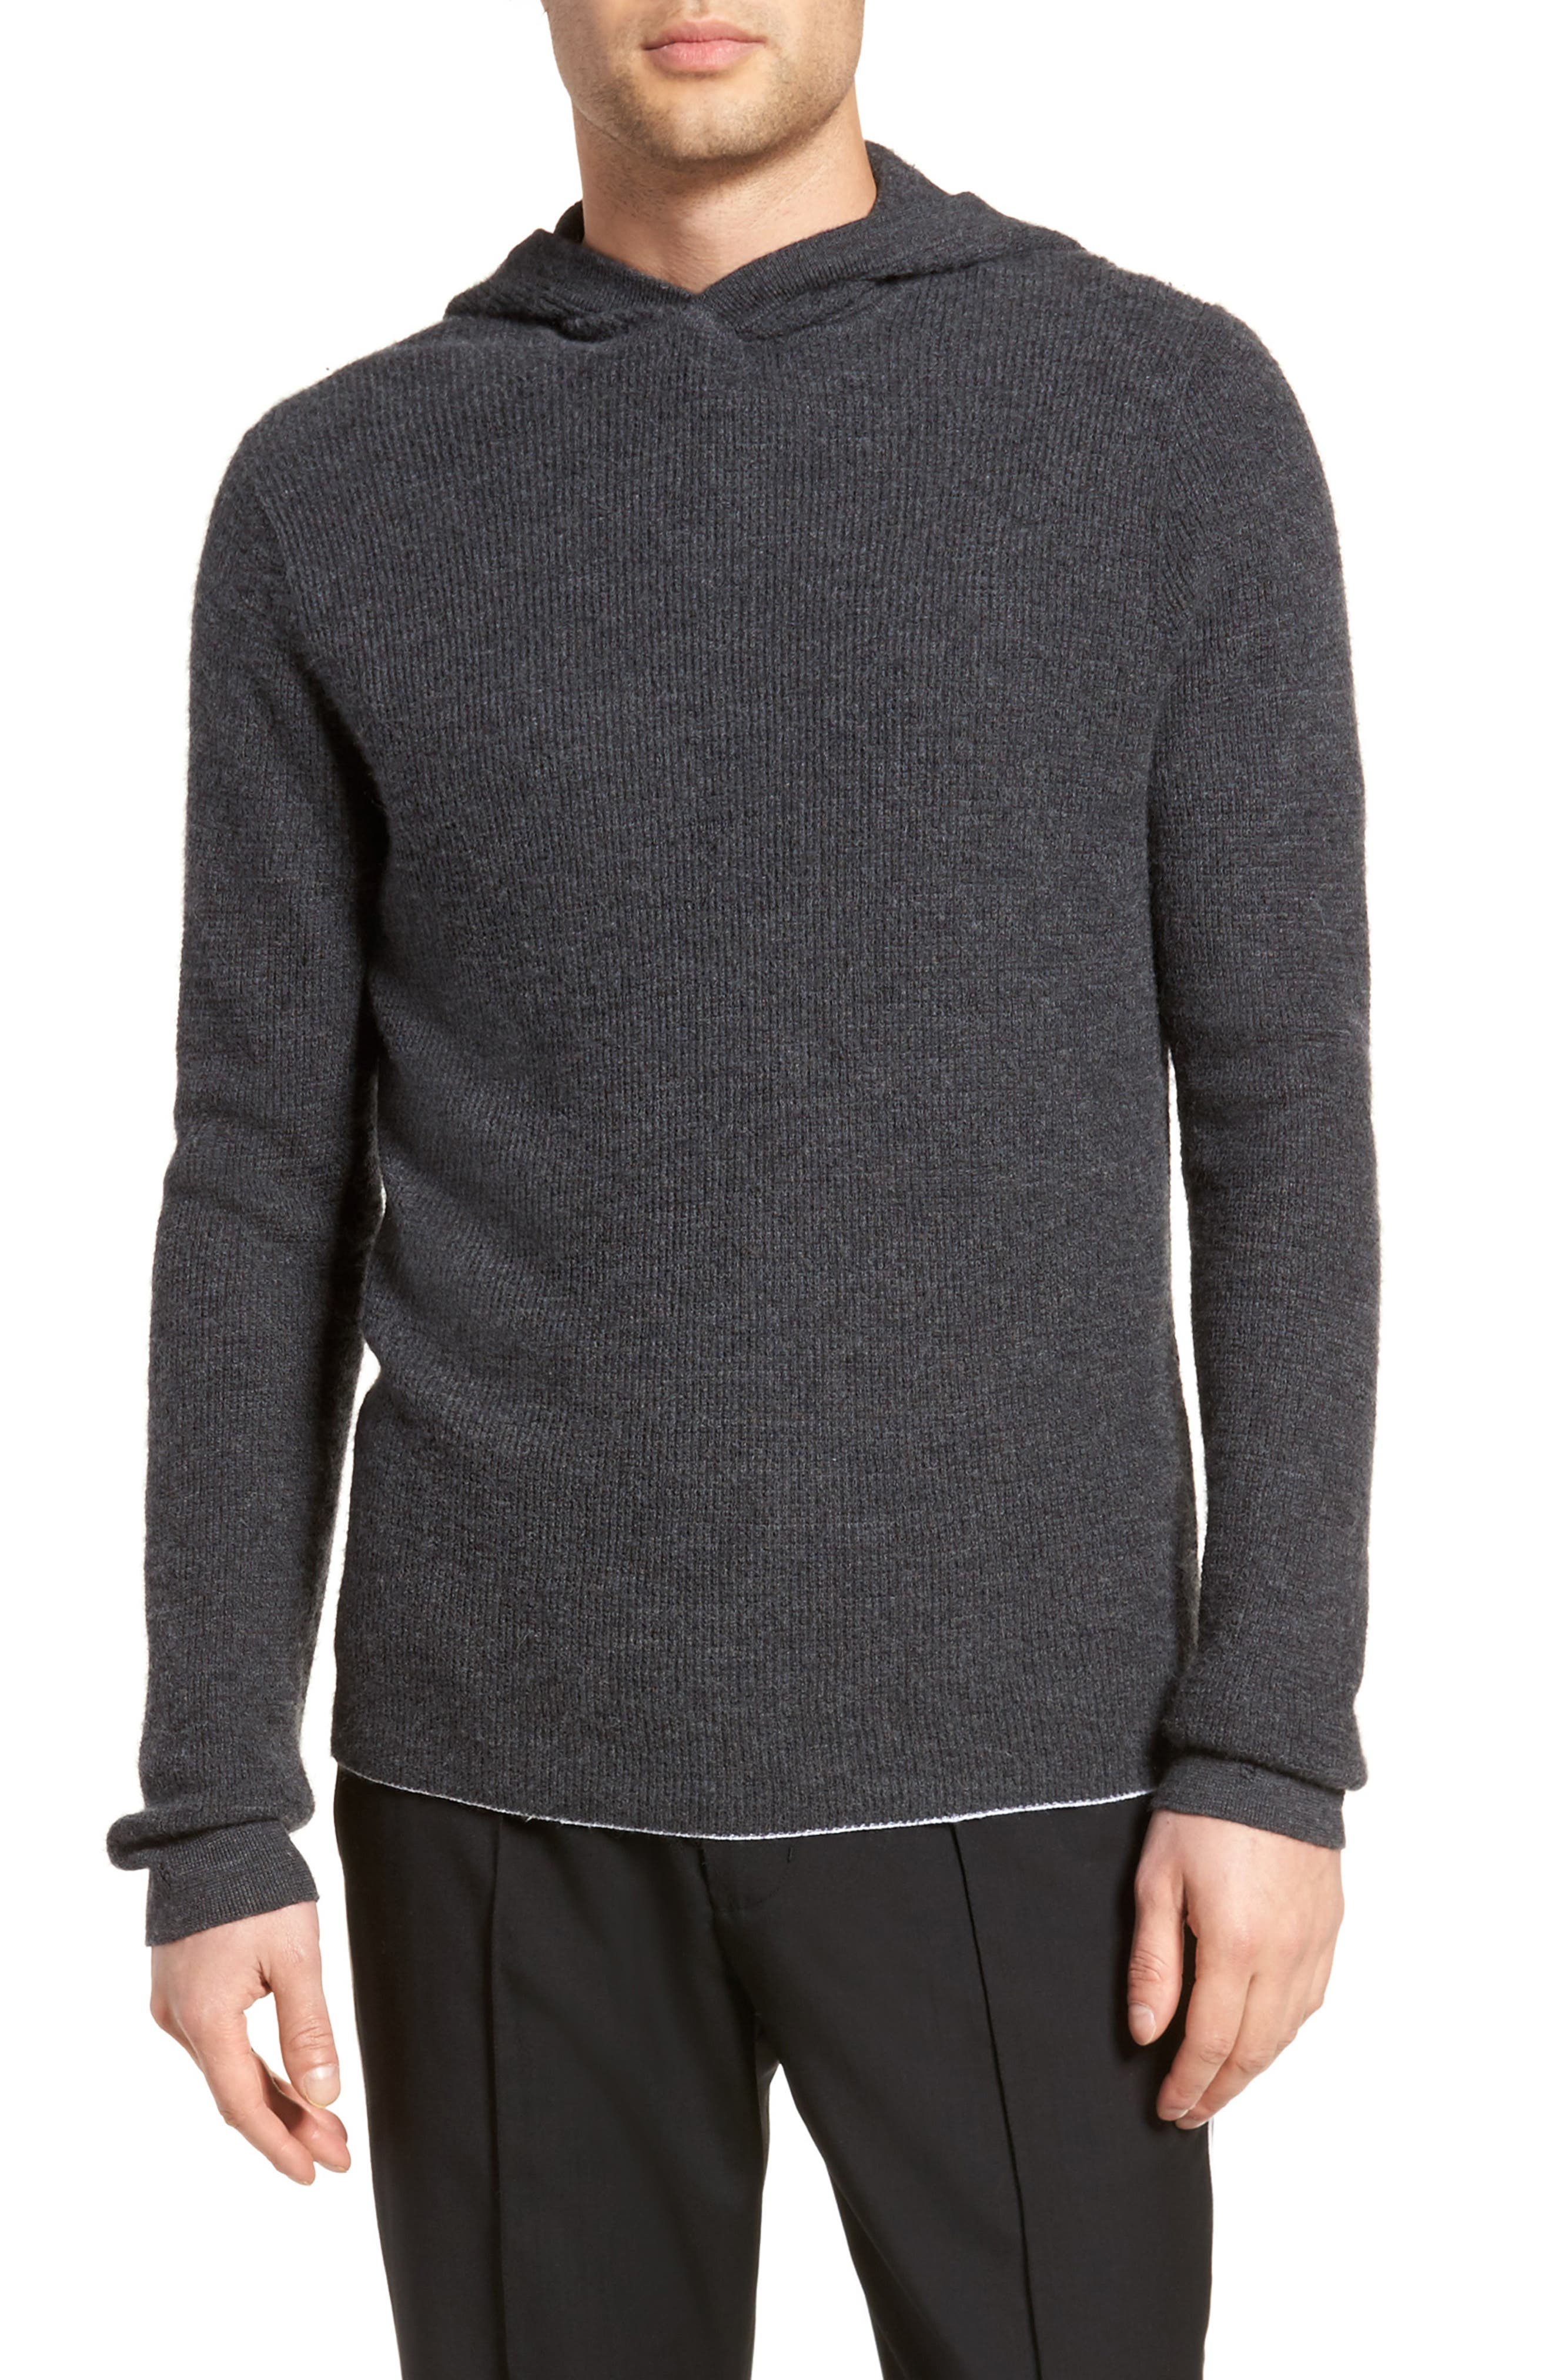 Main Image - Vince Thermal Knit Cashmere Hooded Sweater